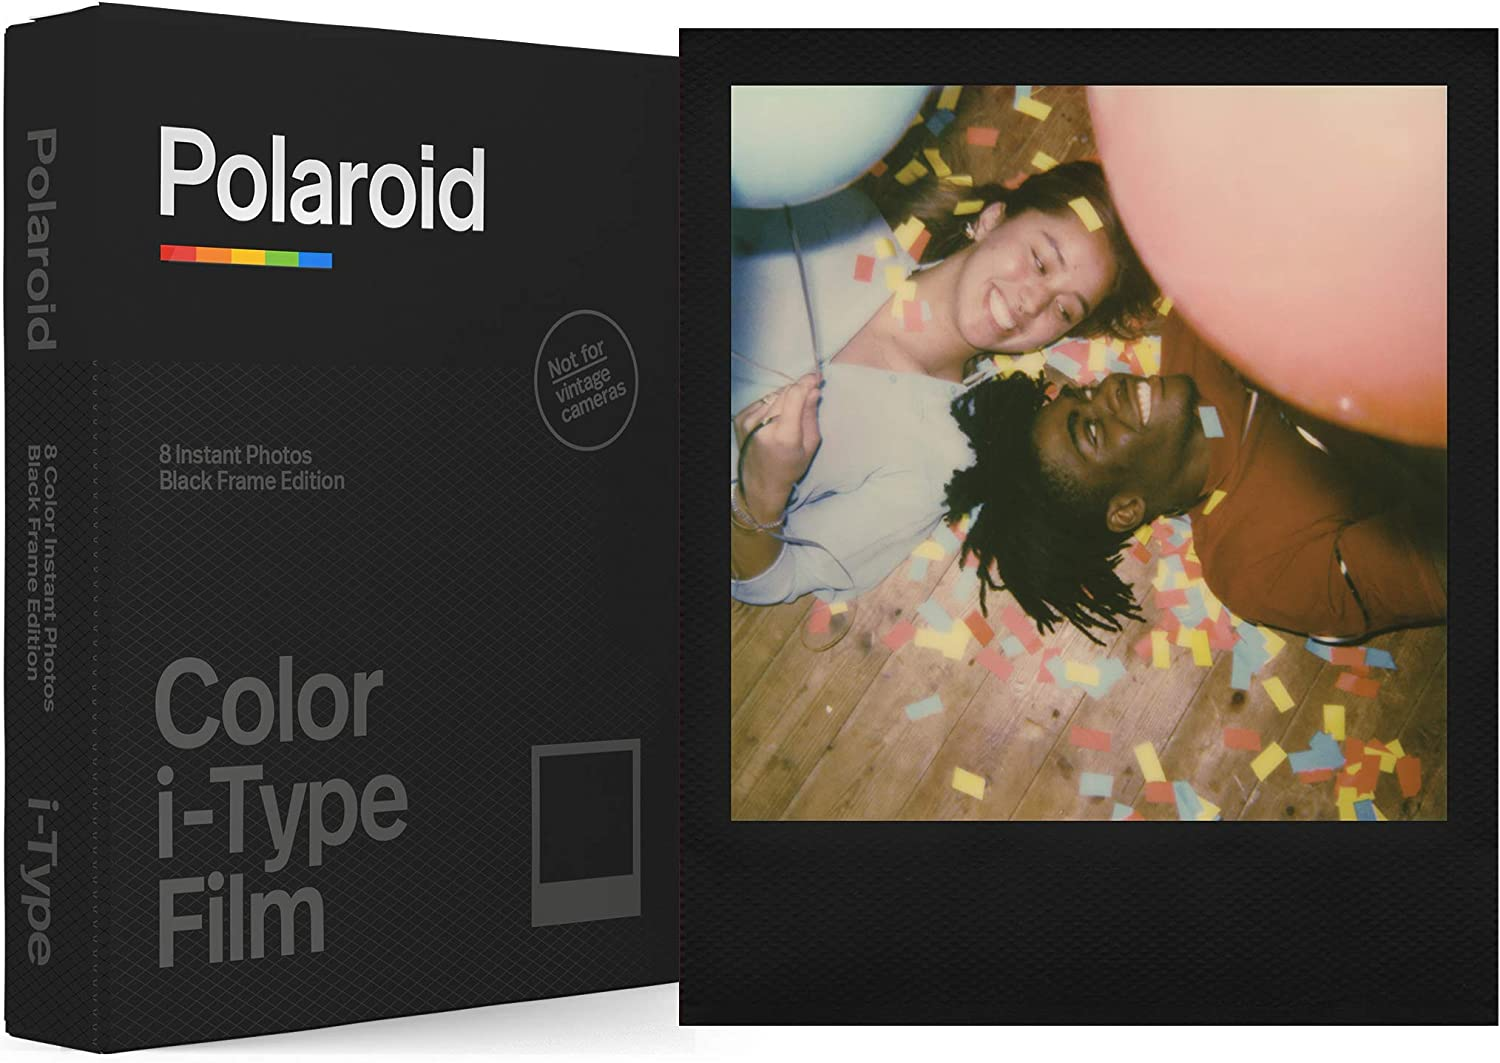 Amazon Com Polaroid Originals Color Film For I Type Black Frame Edition 6019 Camera Photo #frame #polaroid #camera #photo #полароид #рамка #рамка камера #рамка квадратная. polaroid originals color film for i type black frame edition 6019